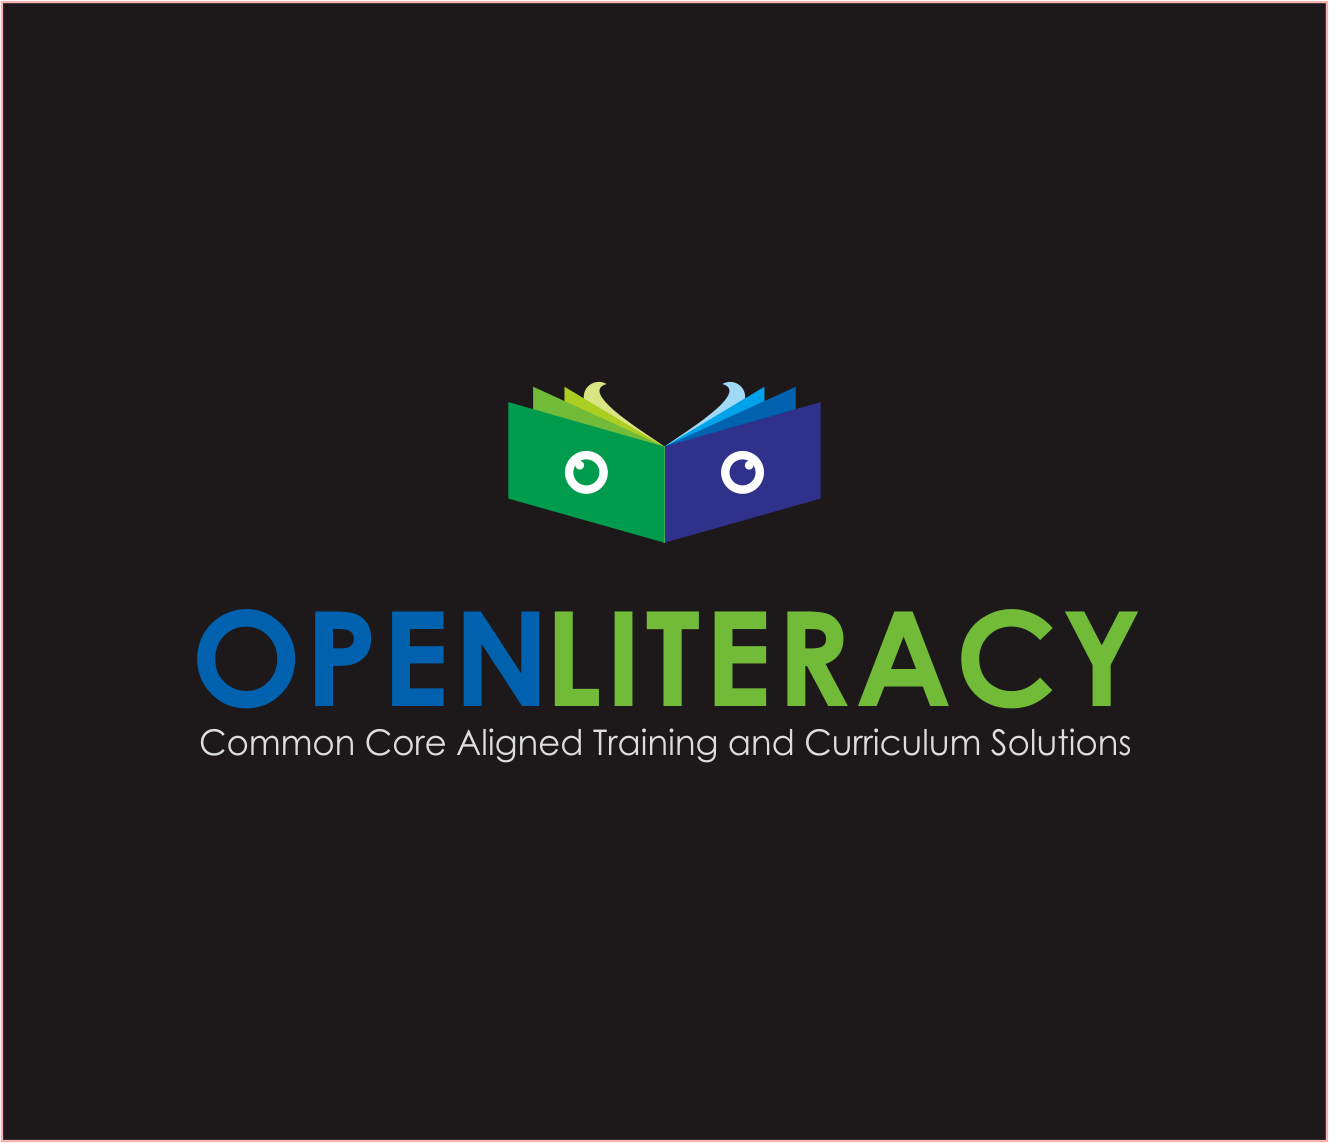 Logo Design by Armada Jamaluddin - Entry No. 136 in the Logo Design Contest Inspiring Logo Design for OpenLiteracy.